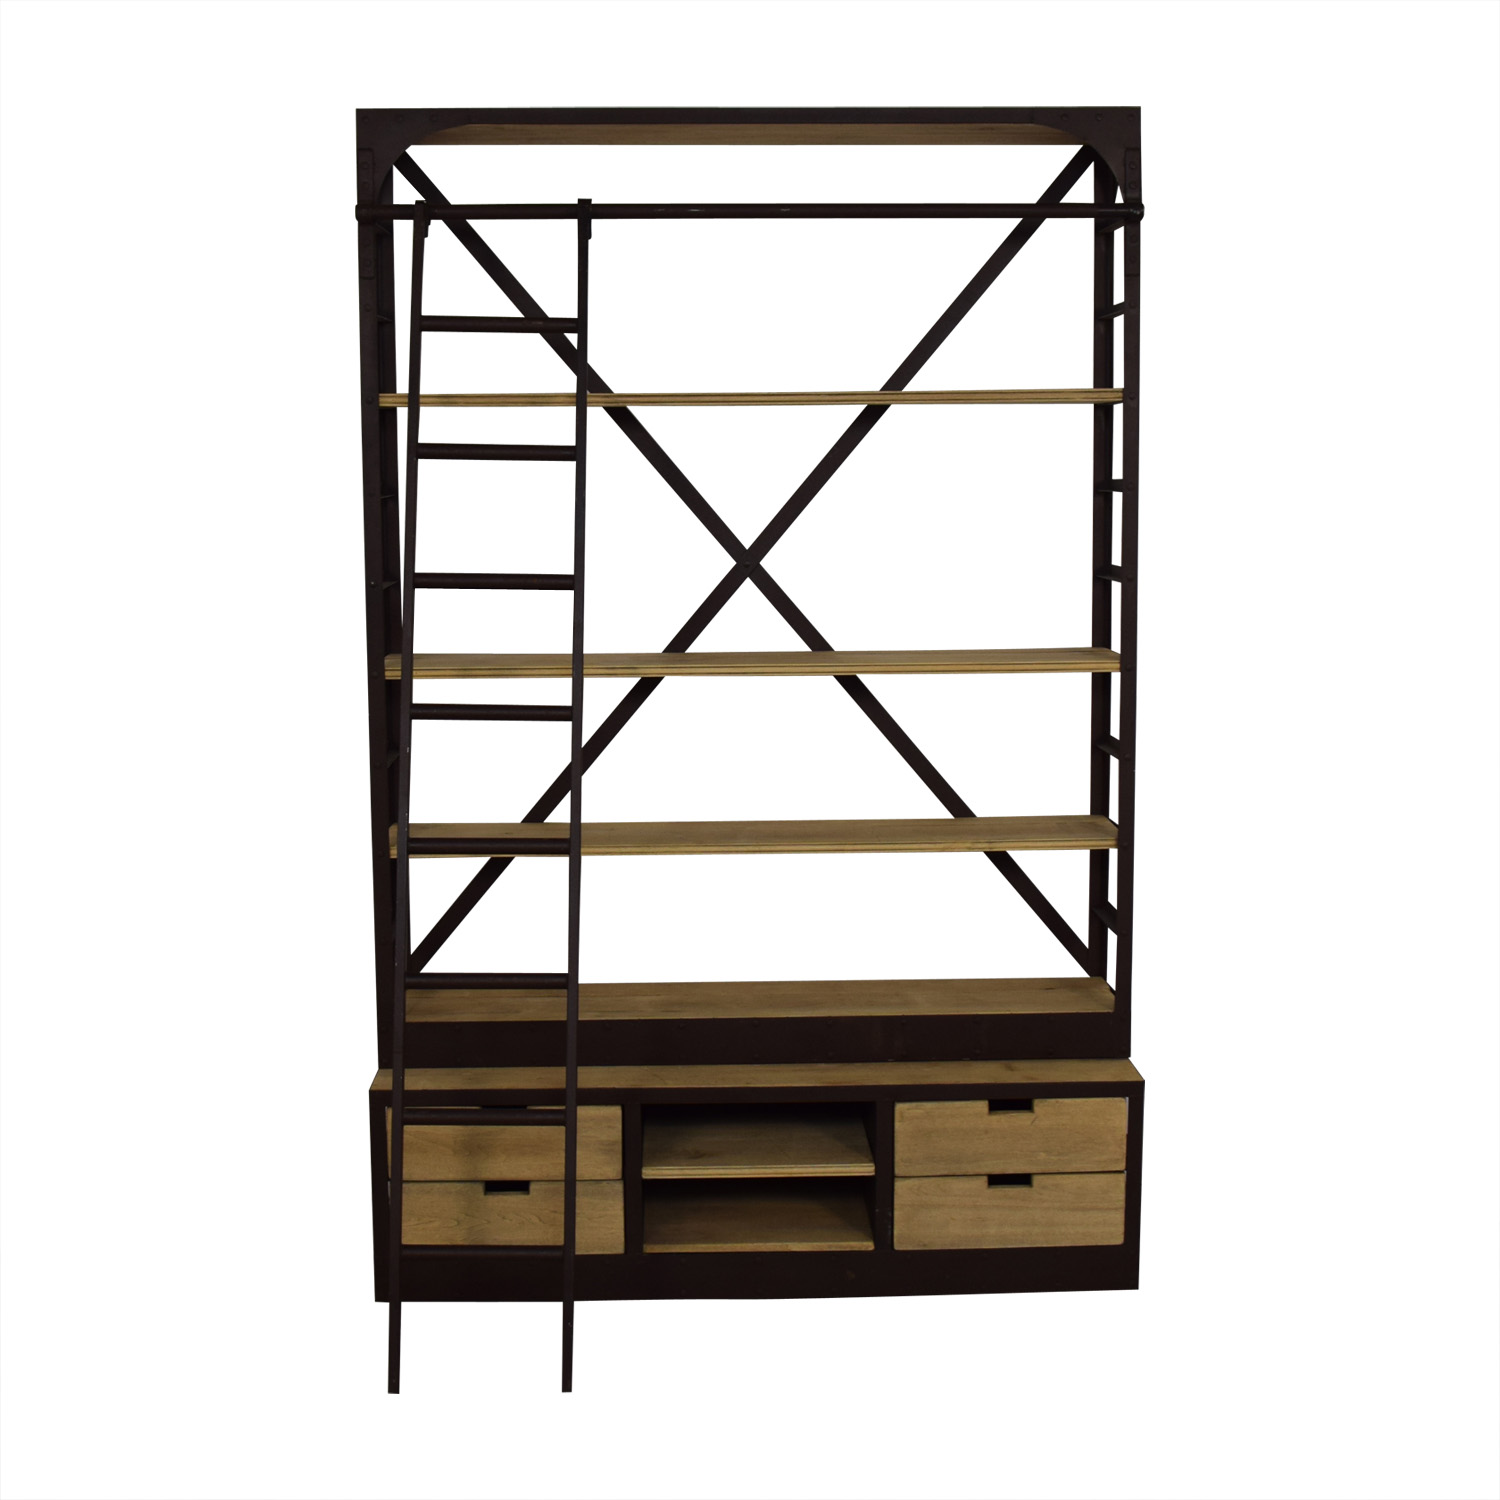 Restoration Hardware Restoration Hardware 1950s Dutch Shipyard Triple Shelving with Ladder dimensions